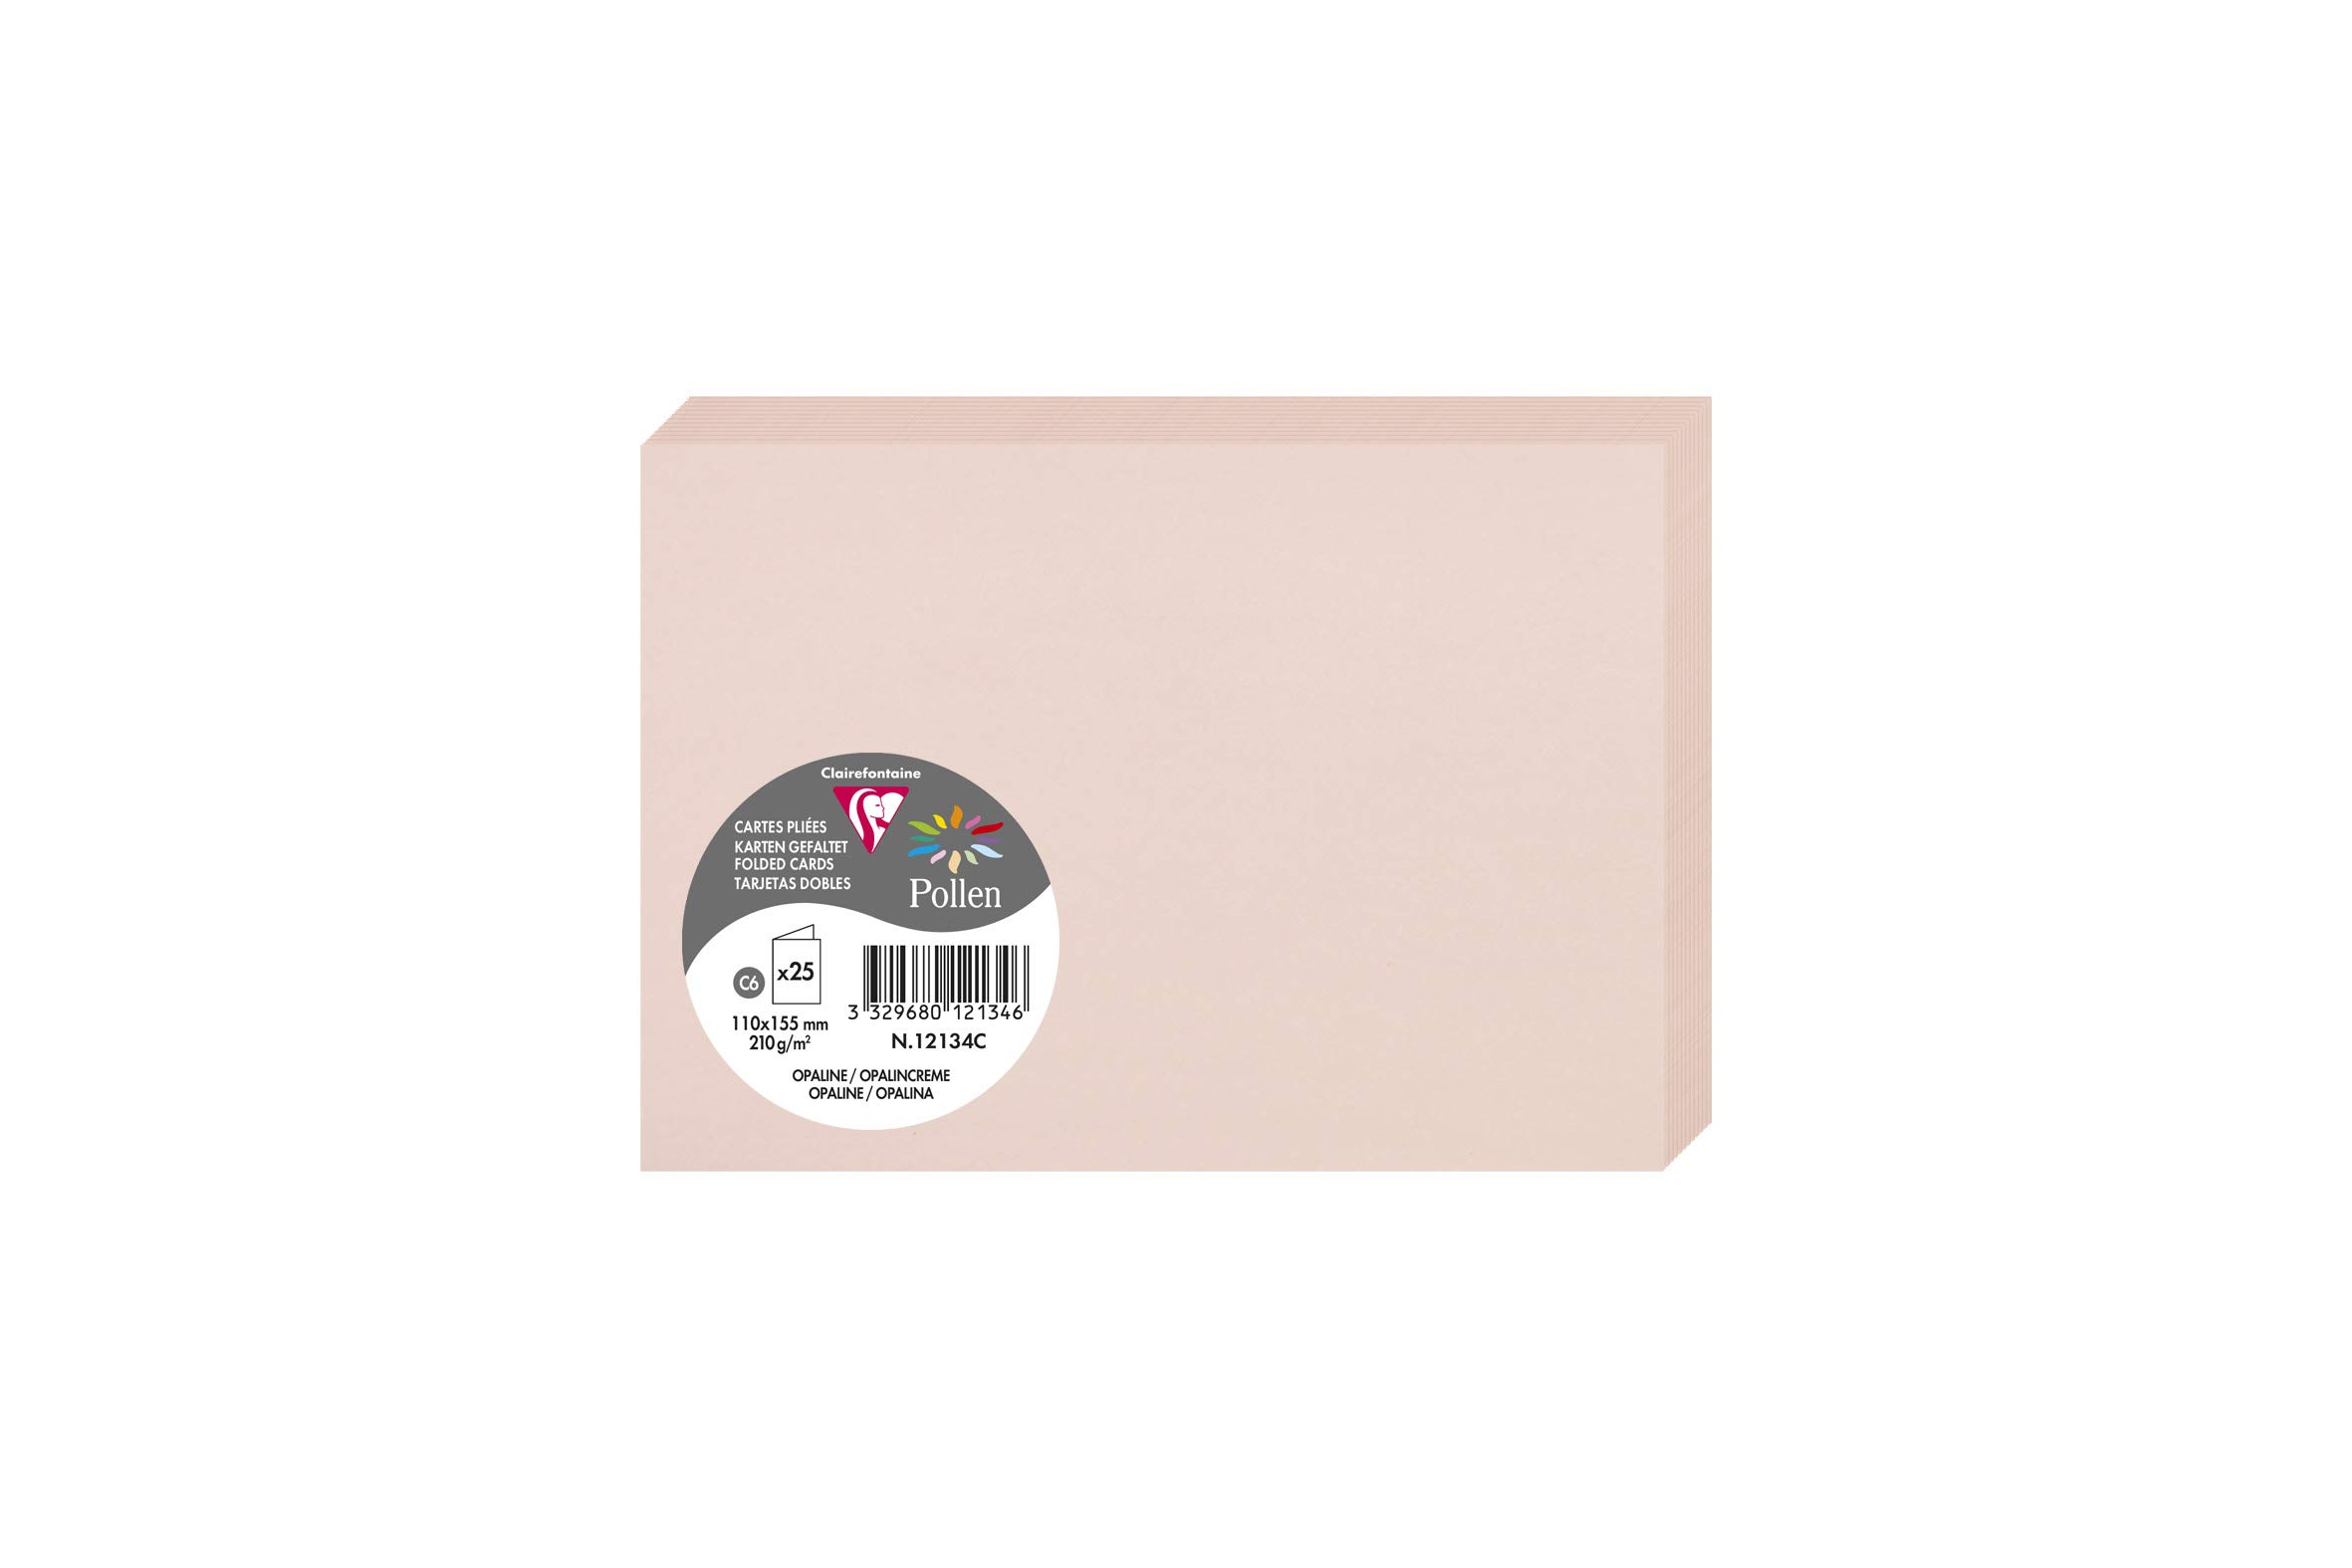 Clairefontaine 2336°C Pack of 25 Cards11x 15.50X 0.10cm 11 x 15.50 x 0.10 Opaline